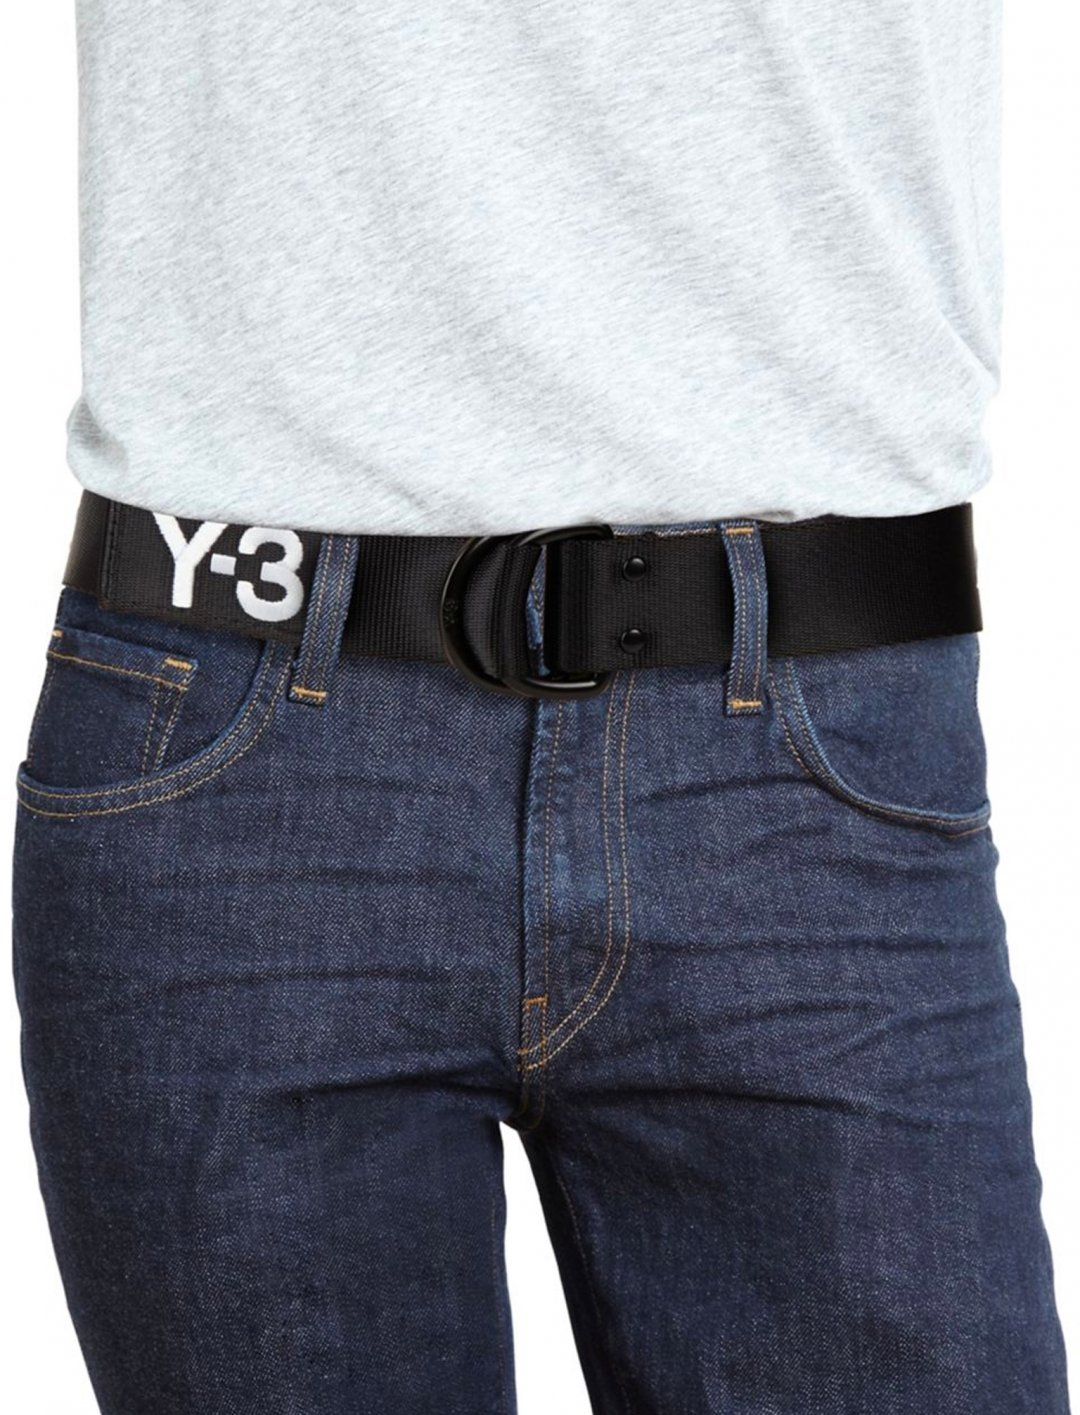 "Ruel's Black Belt {""id"":16,""product_section_id"":1,""name"":""Accessories"",""order"":15} Y-3"